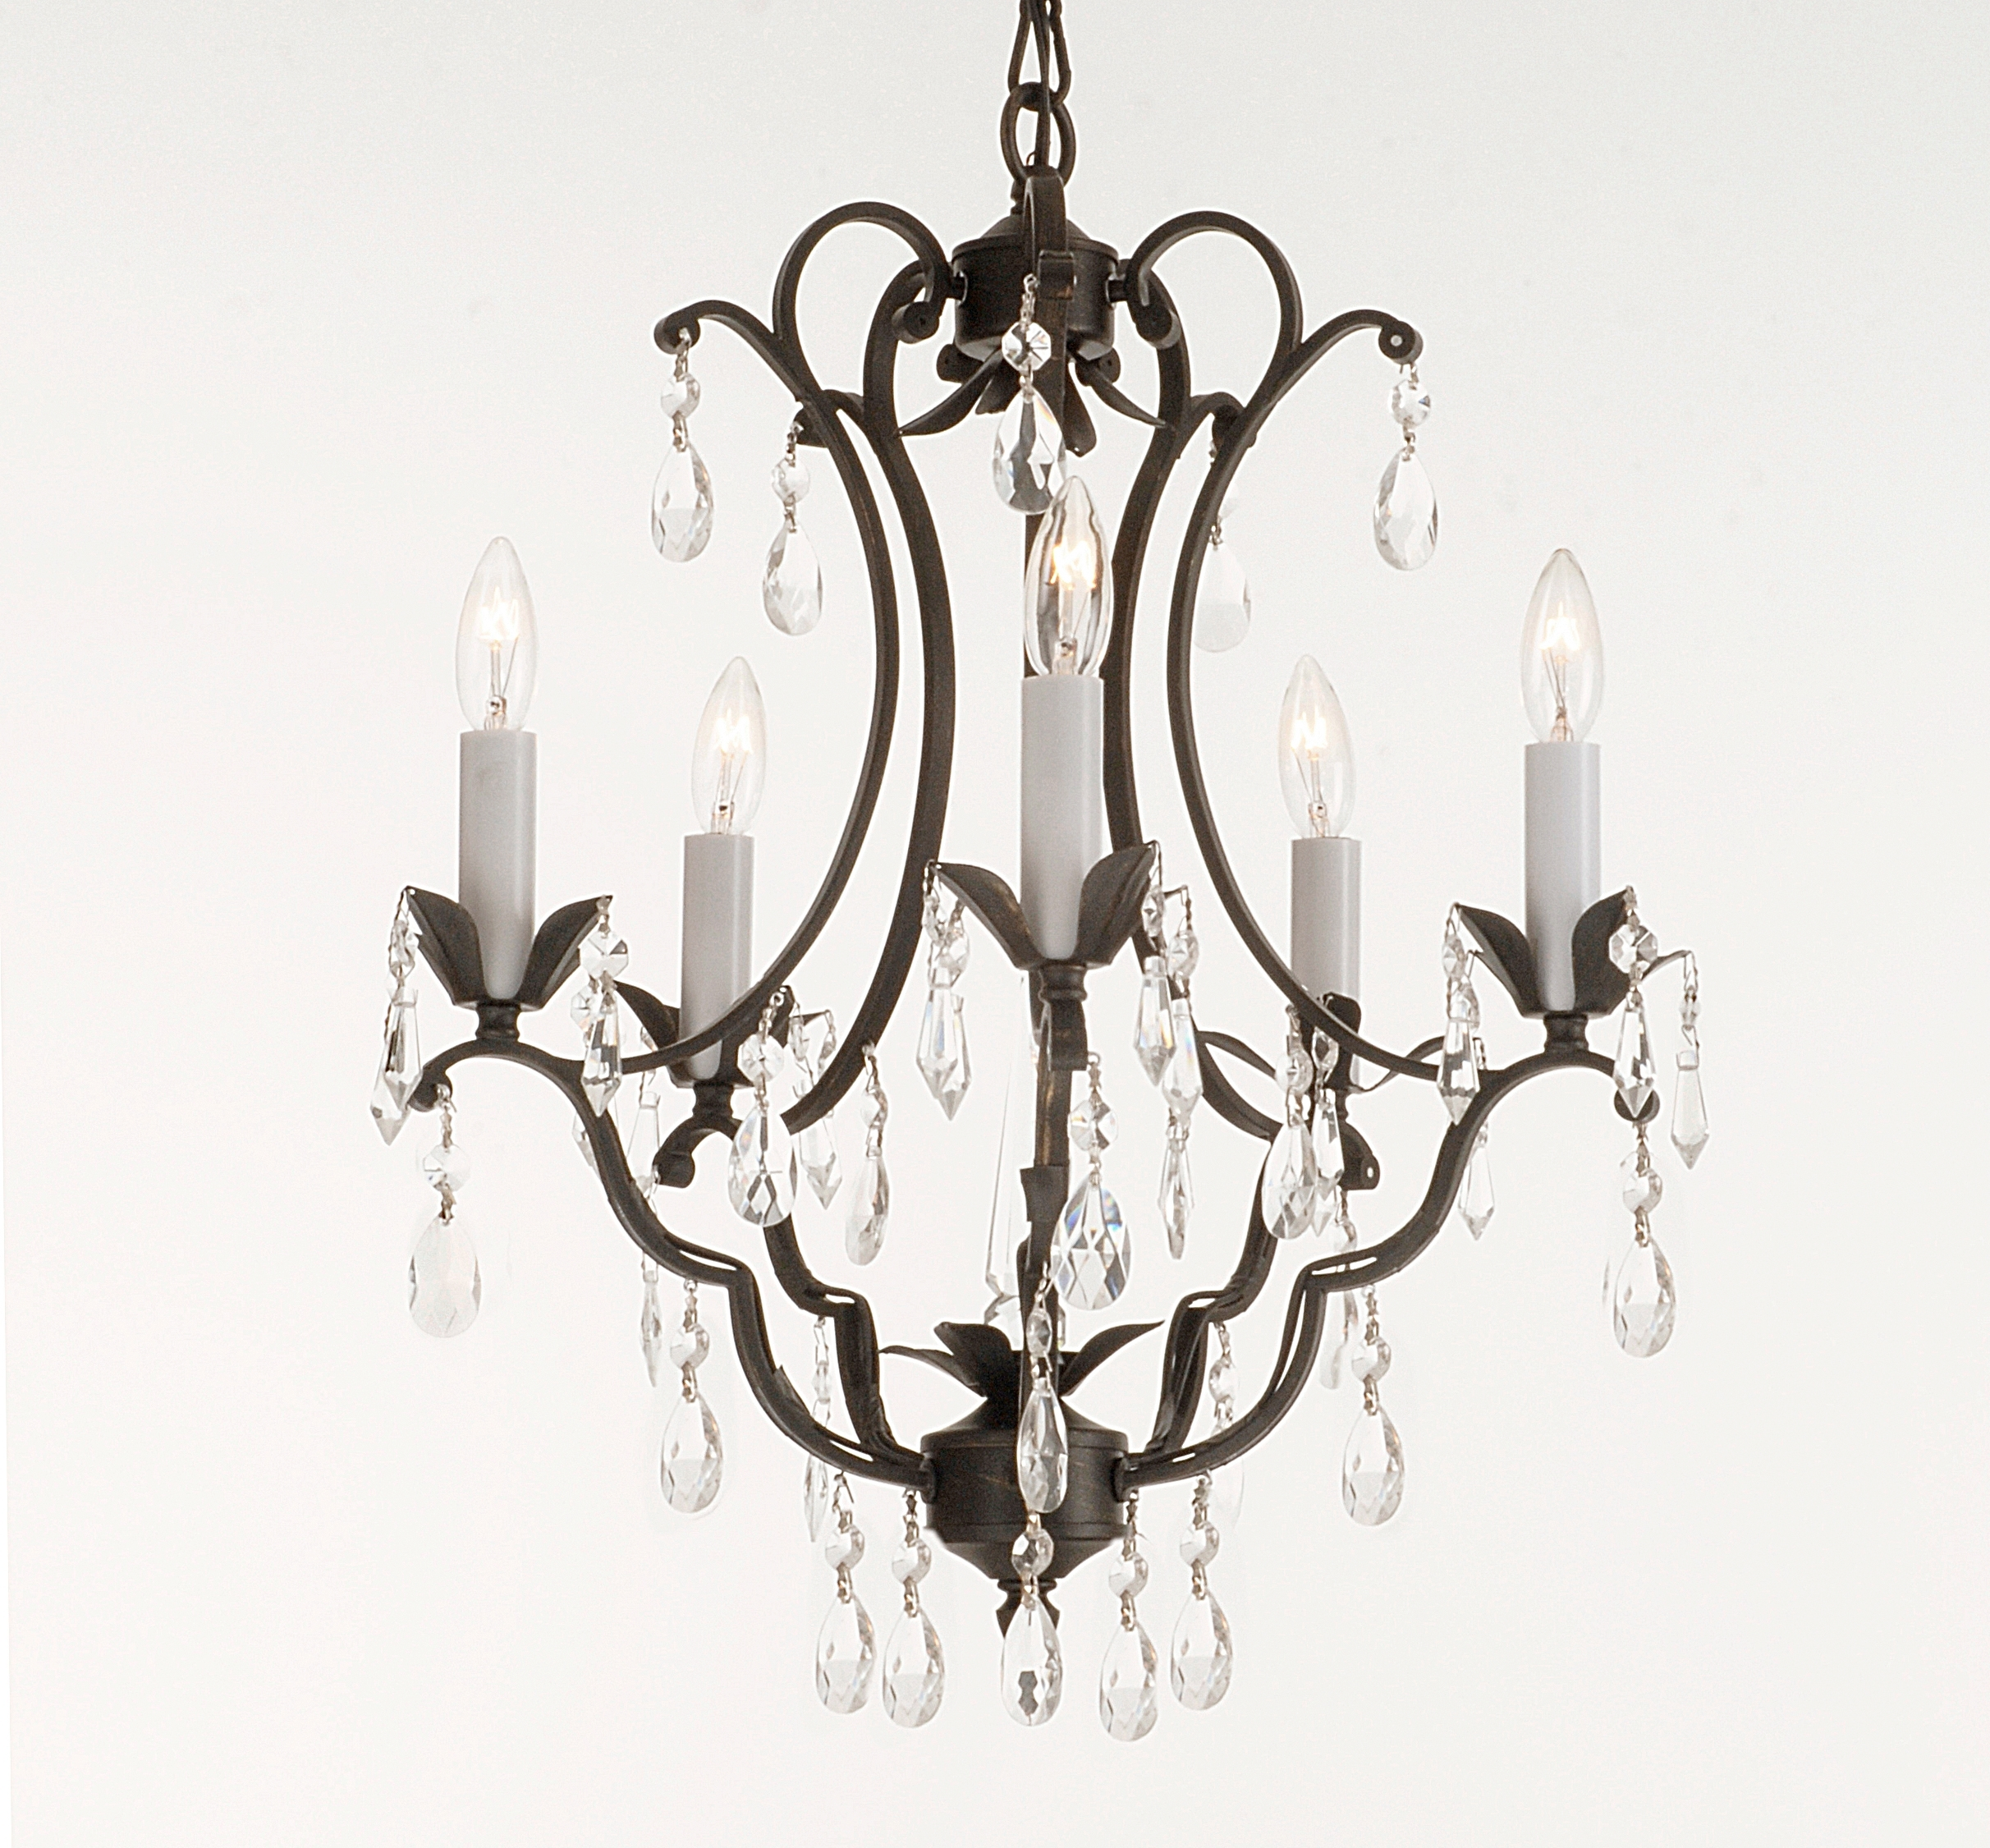 Light : Furniture Vintage Look Modern Black Wrought Iron Chandeliers Regarding Most Recent Candle Look Chandeliers (View 13 of 20)